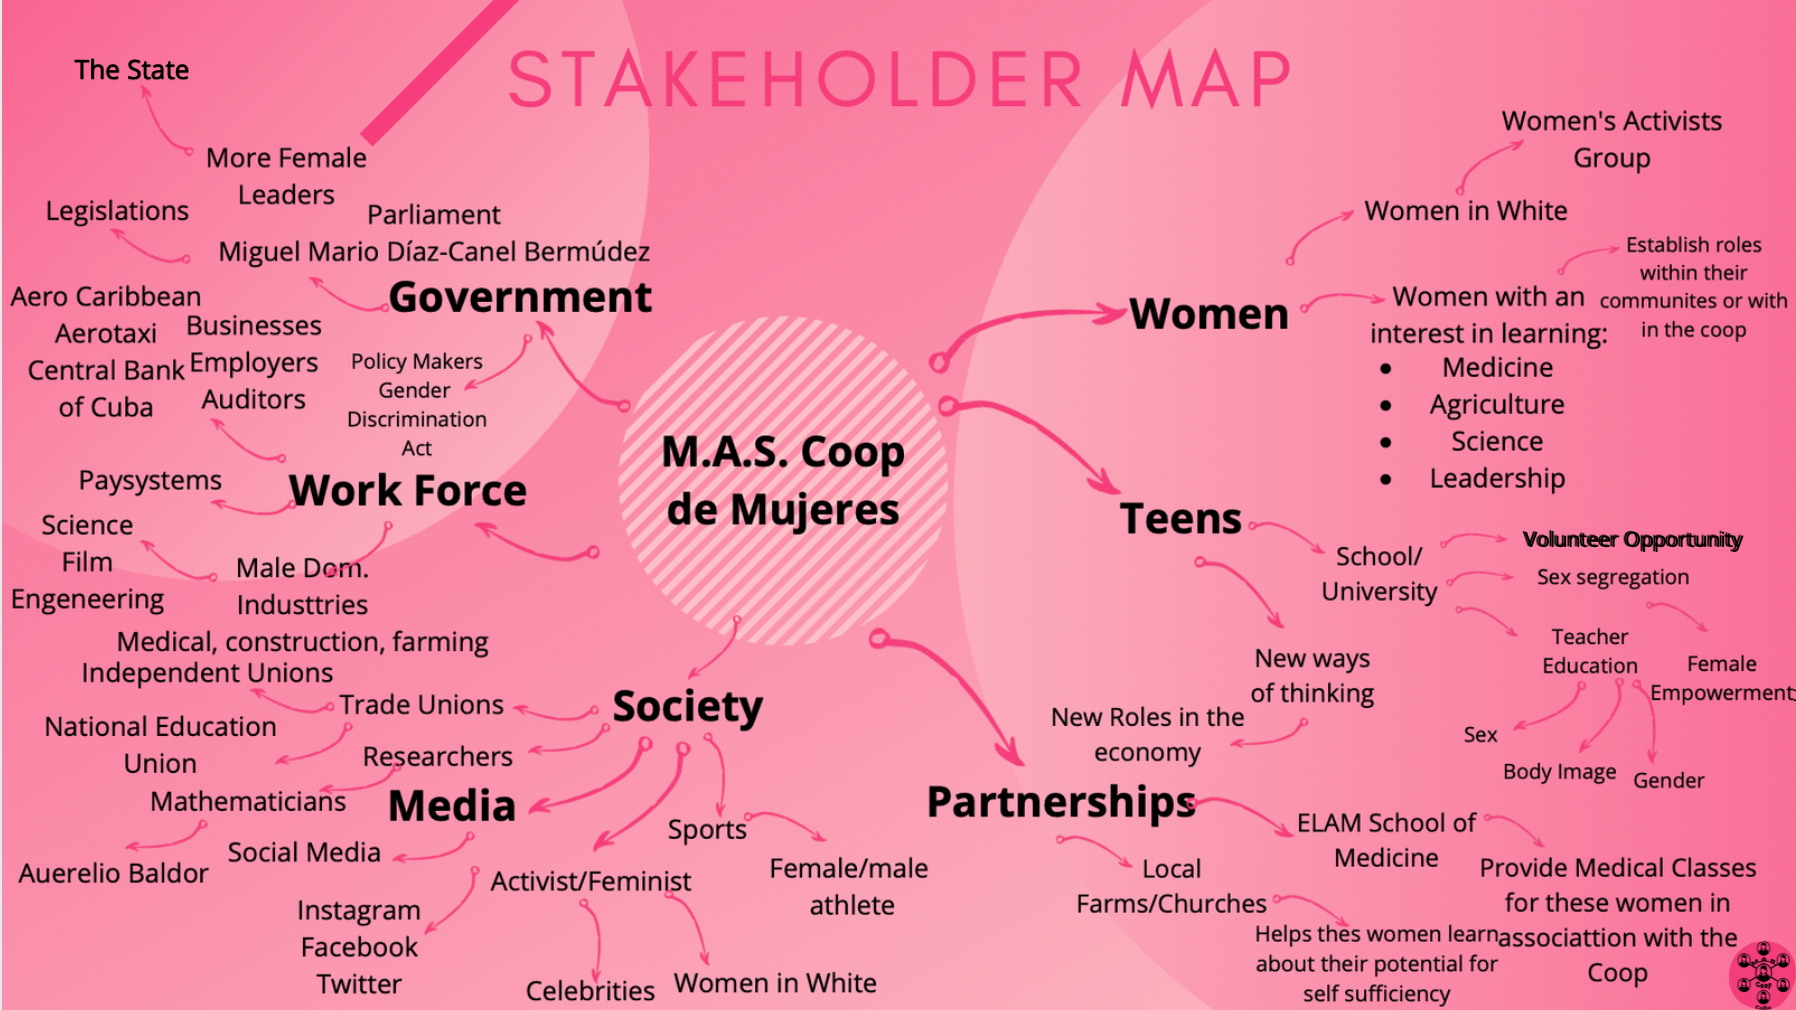 This stakeholder map represents the women of M.A.S Coop trying to close the gap through partnerships.